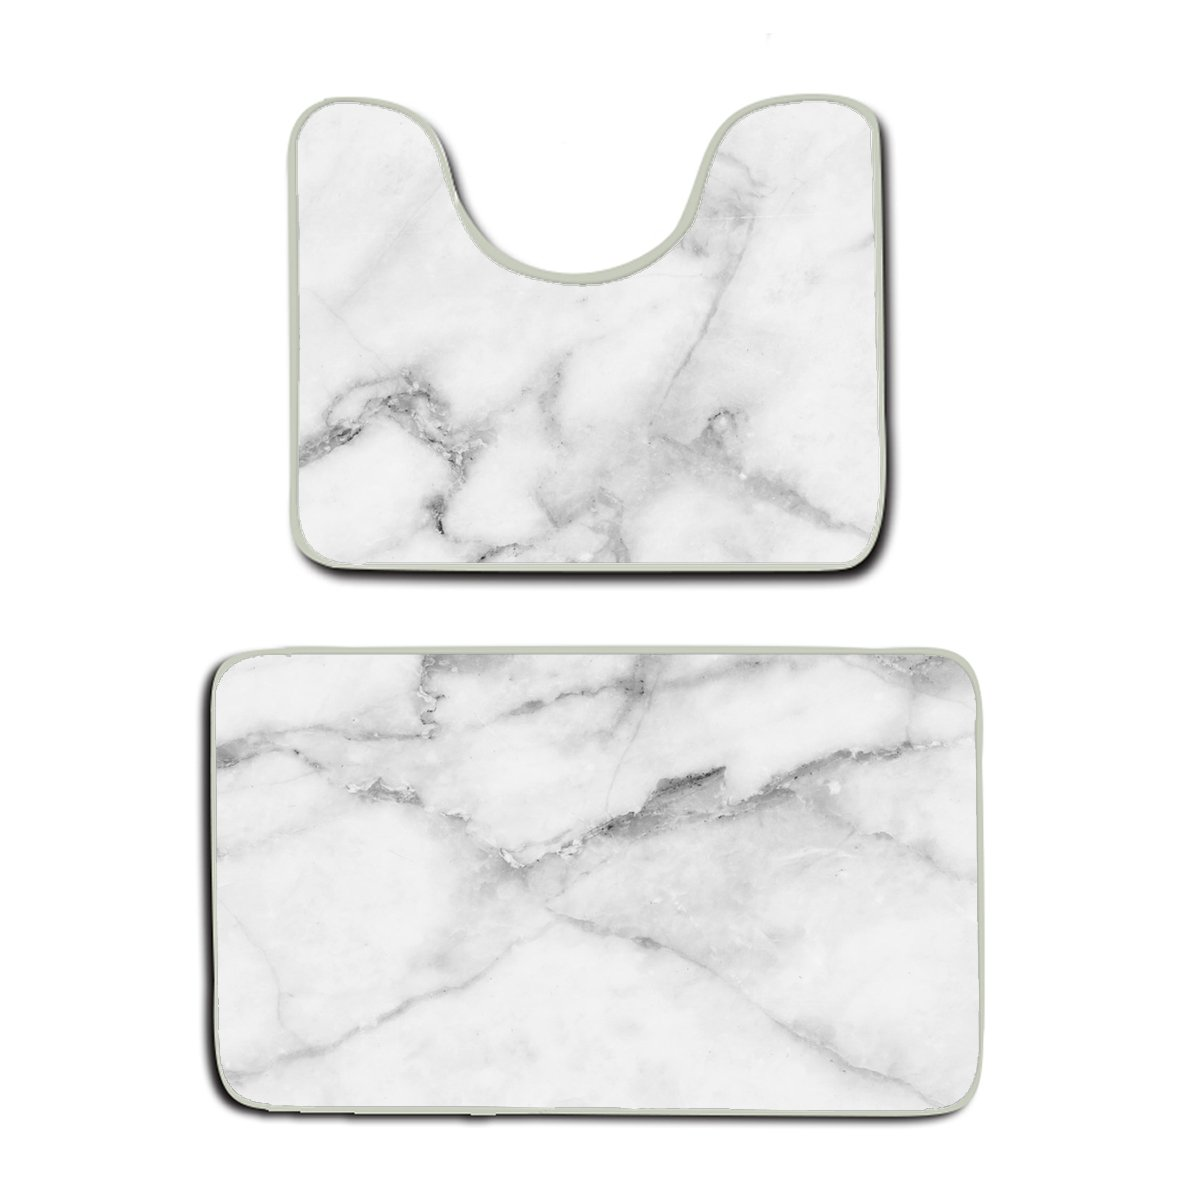 AMERICAN TANG Natural White Marble Texture For Background Or Skin Tile Wall Luxurious Picture High Resolution Bathroom Rug 2 Piece Bath Mat Set Contour Rug